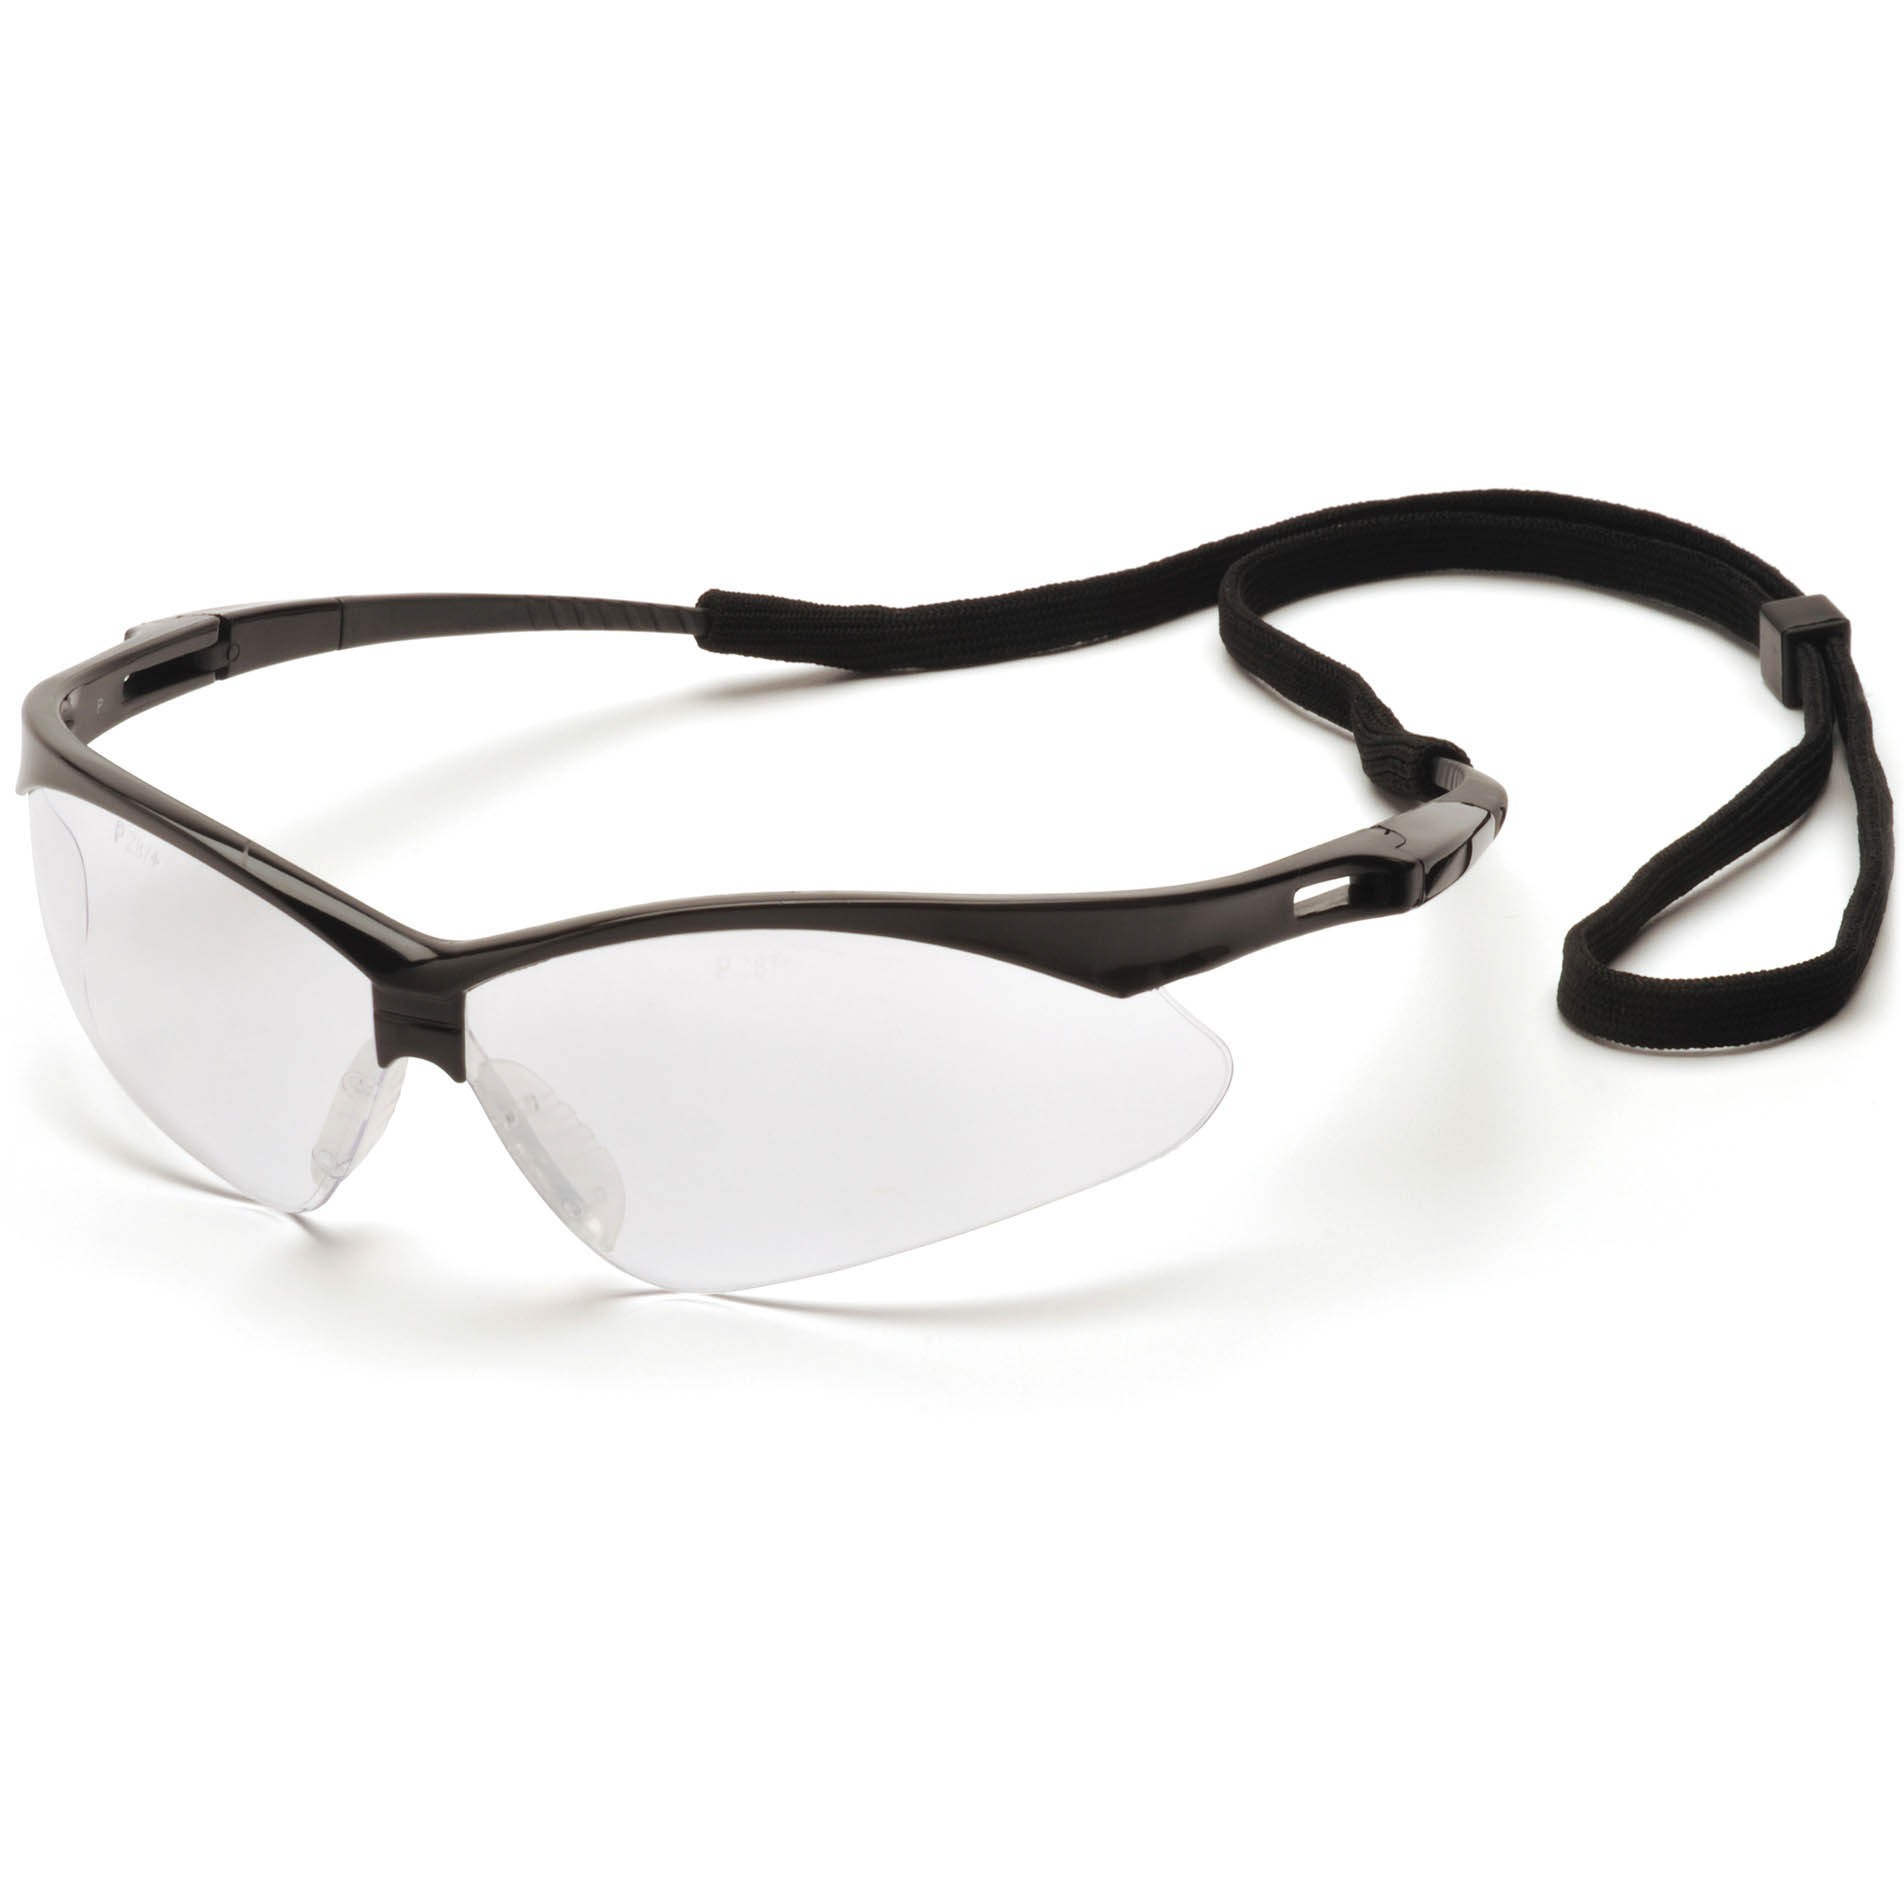 Black Frame Glasses With Clear Lenses : Pyramex PMXTREME Safety Glasses - Black Frame - Clear Lens ...